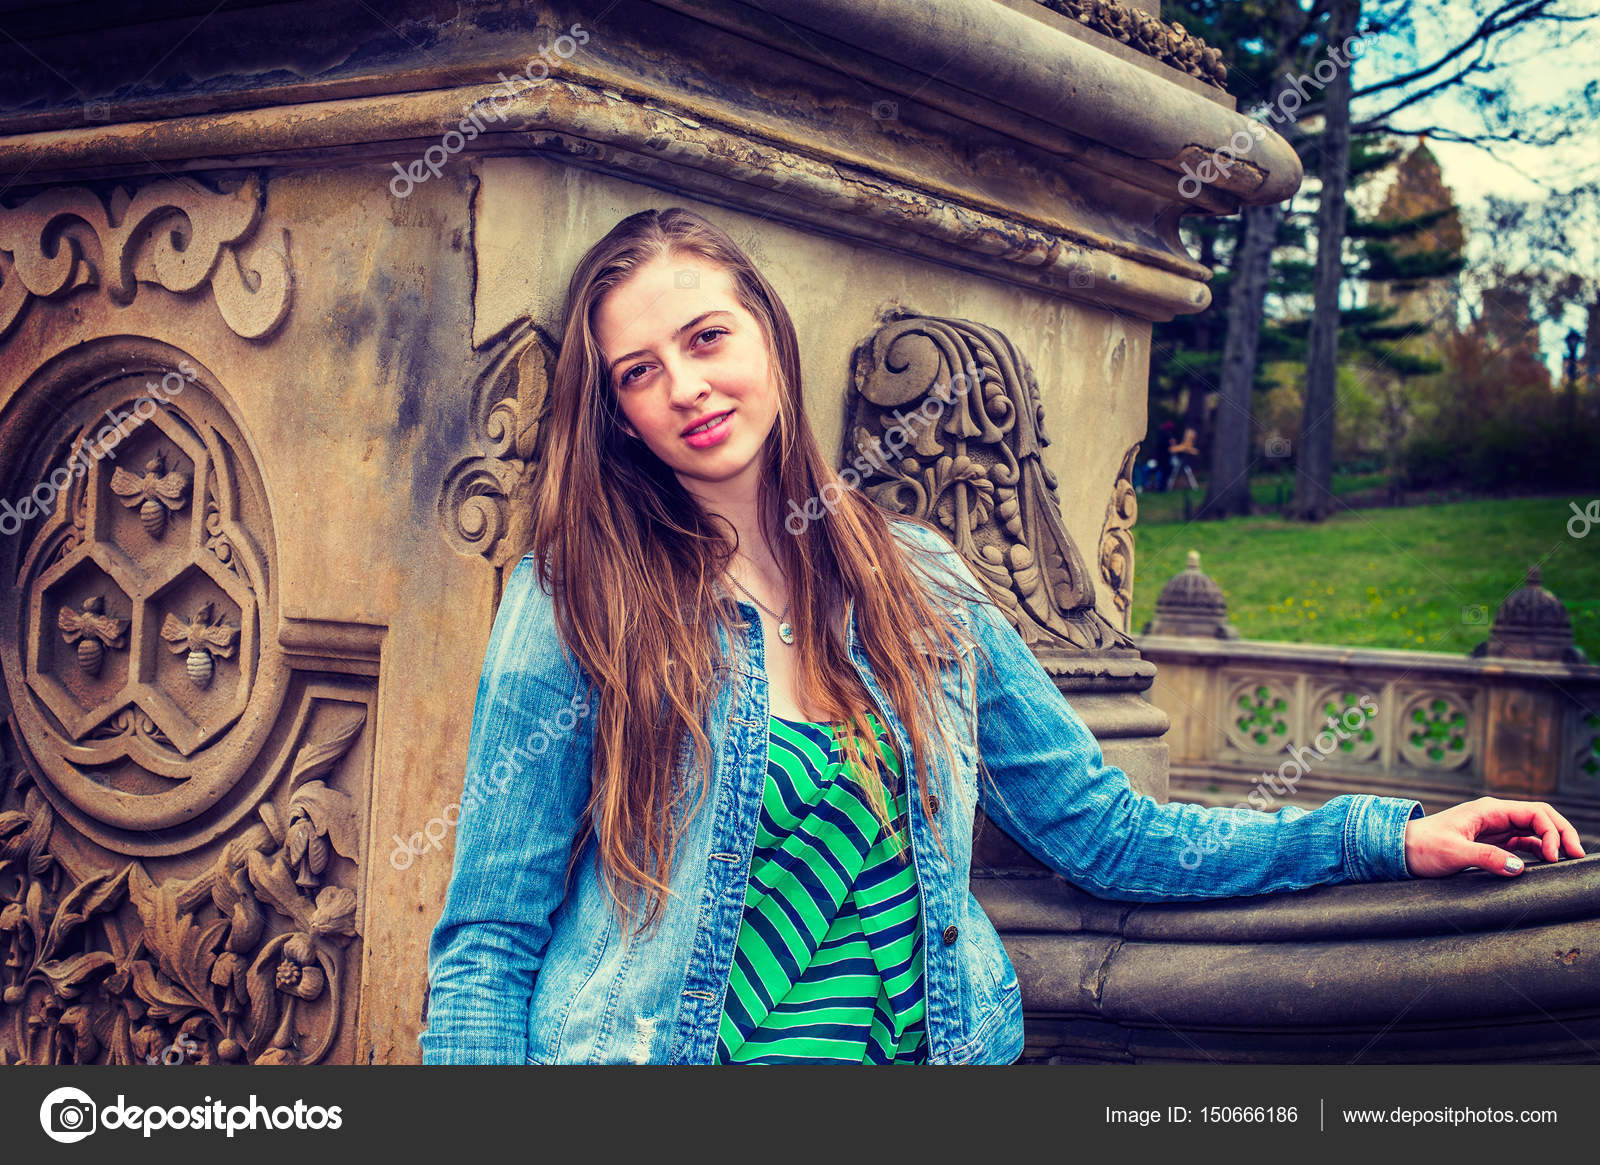 3037f70b7e1 American teenage girl wearing patterned undershirt, Denim jacket, leaning  against column of old fashion style fence, smiling, looking at you.